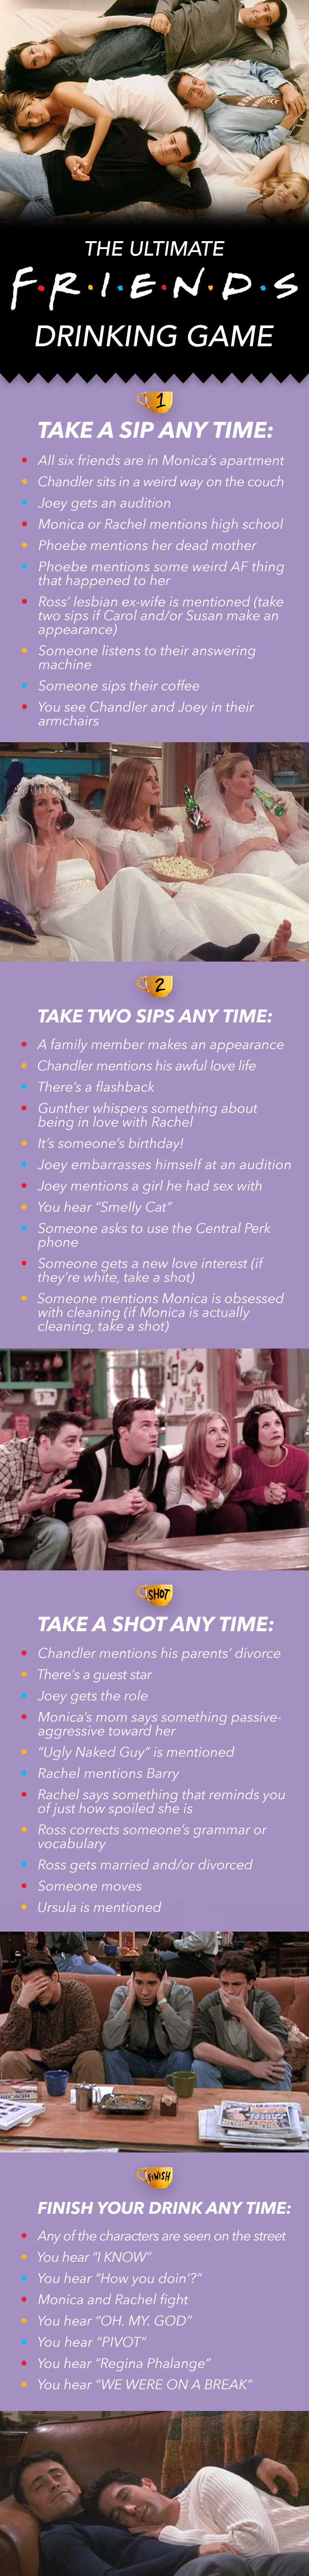 The Ultimate Friends Drinking Game Friends Drinking Game Drinking Games Friends Drinks